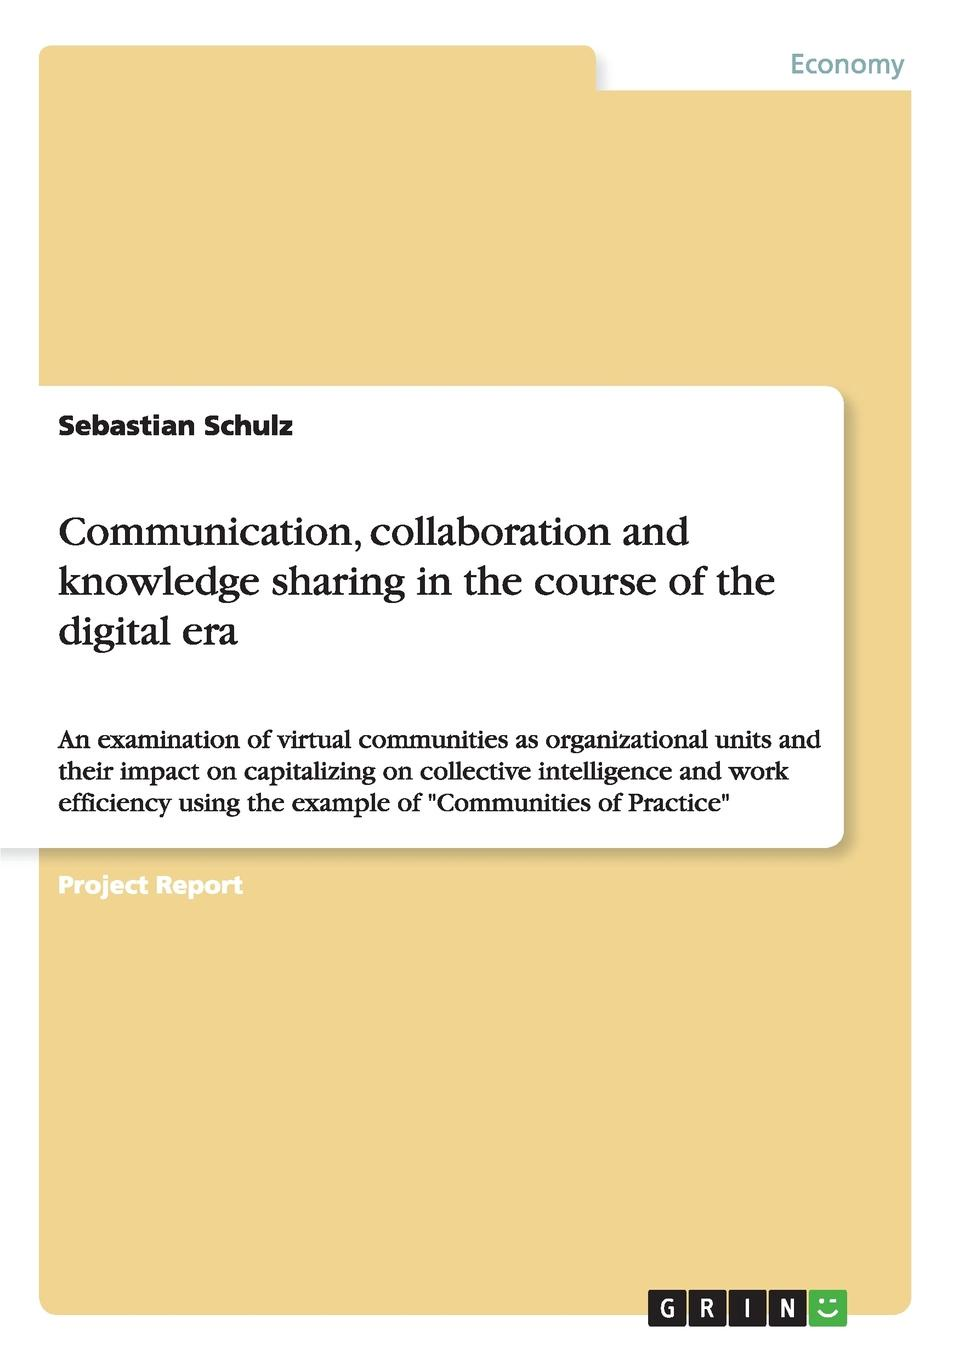 Sebastian Schulz Communication, collaboration and knowledge sharing in the course of the digital era suzanne morse w smart communities how citizens and local leaders can use strategic thinking to build a brighter future